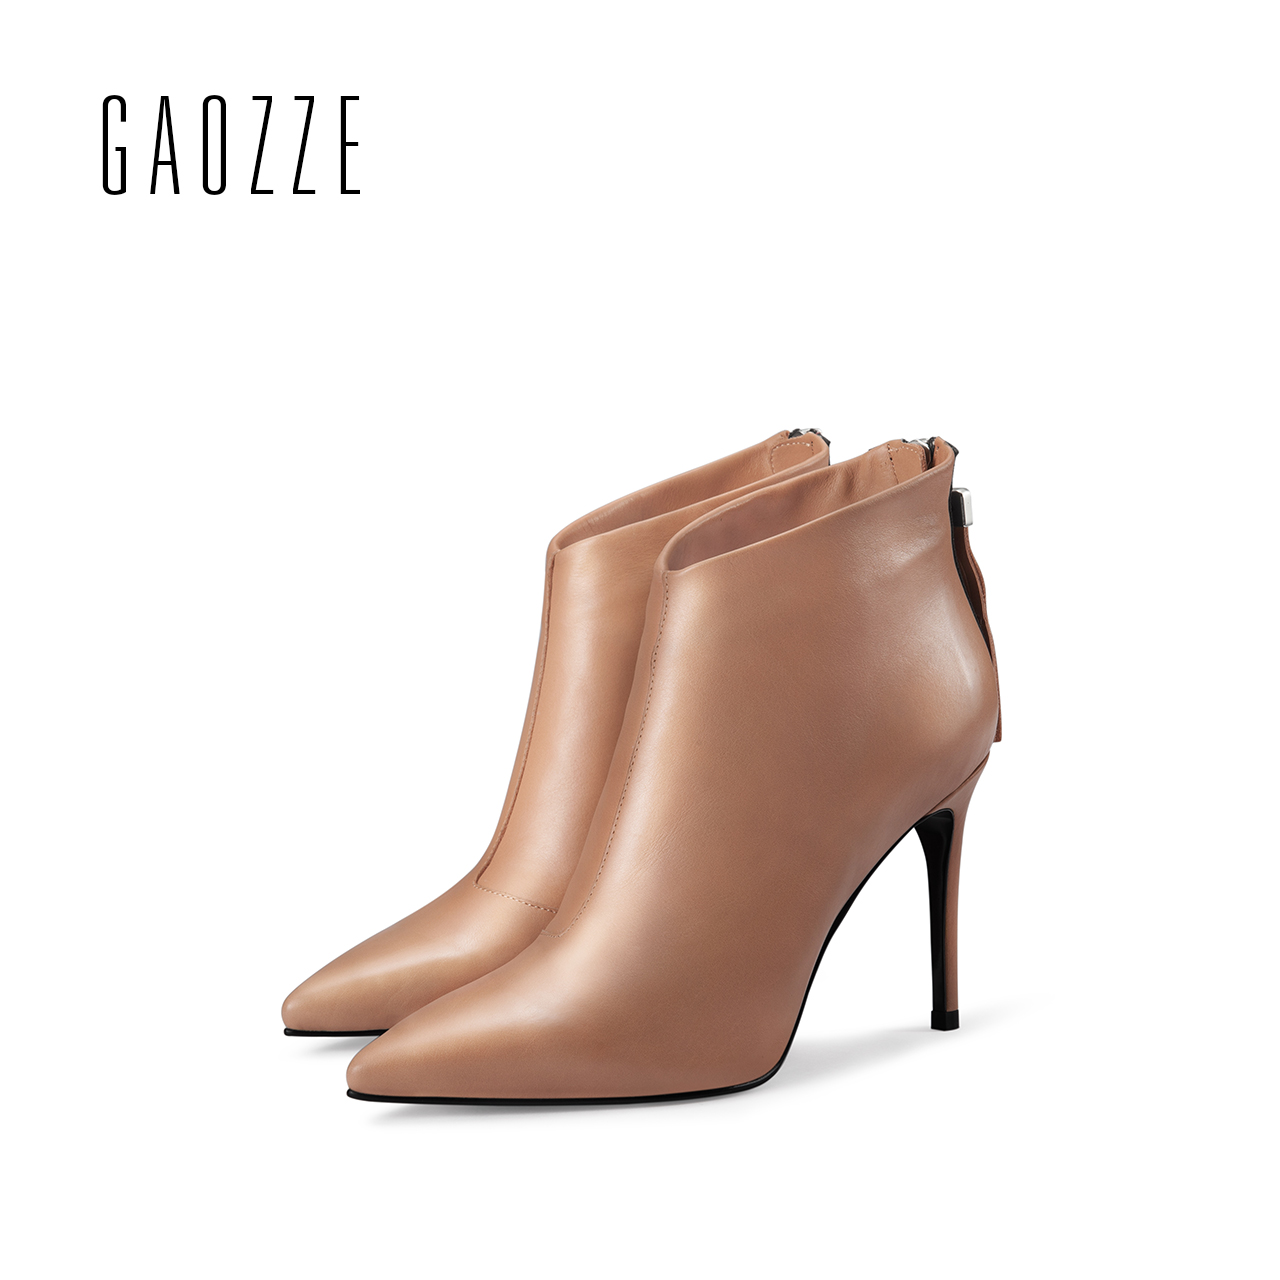 GAOZZE Sexy High-Heeled Ankle Boots For Women Genuine Leather Ankle Boots Pointed Toe Autumn Women Tassel Boots Shoes 2017 New gaozze autumn ankle boots for women 2017 new sexy thin high heeled boots women side zipper fashion pointed toe shoes red boots